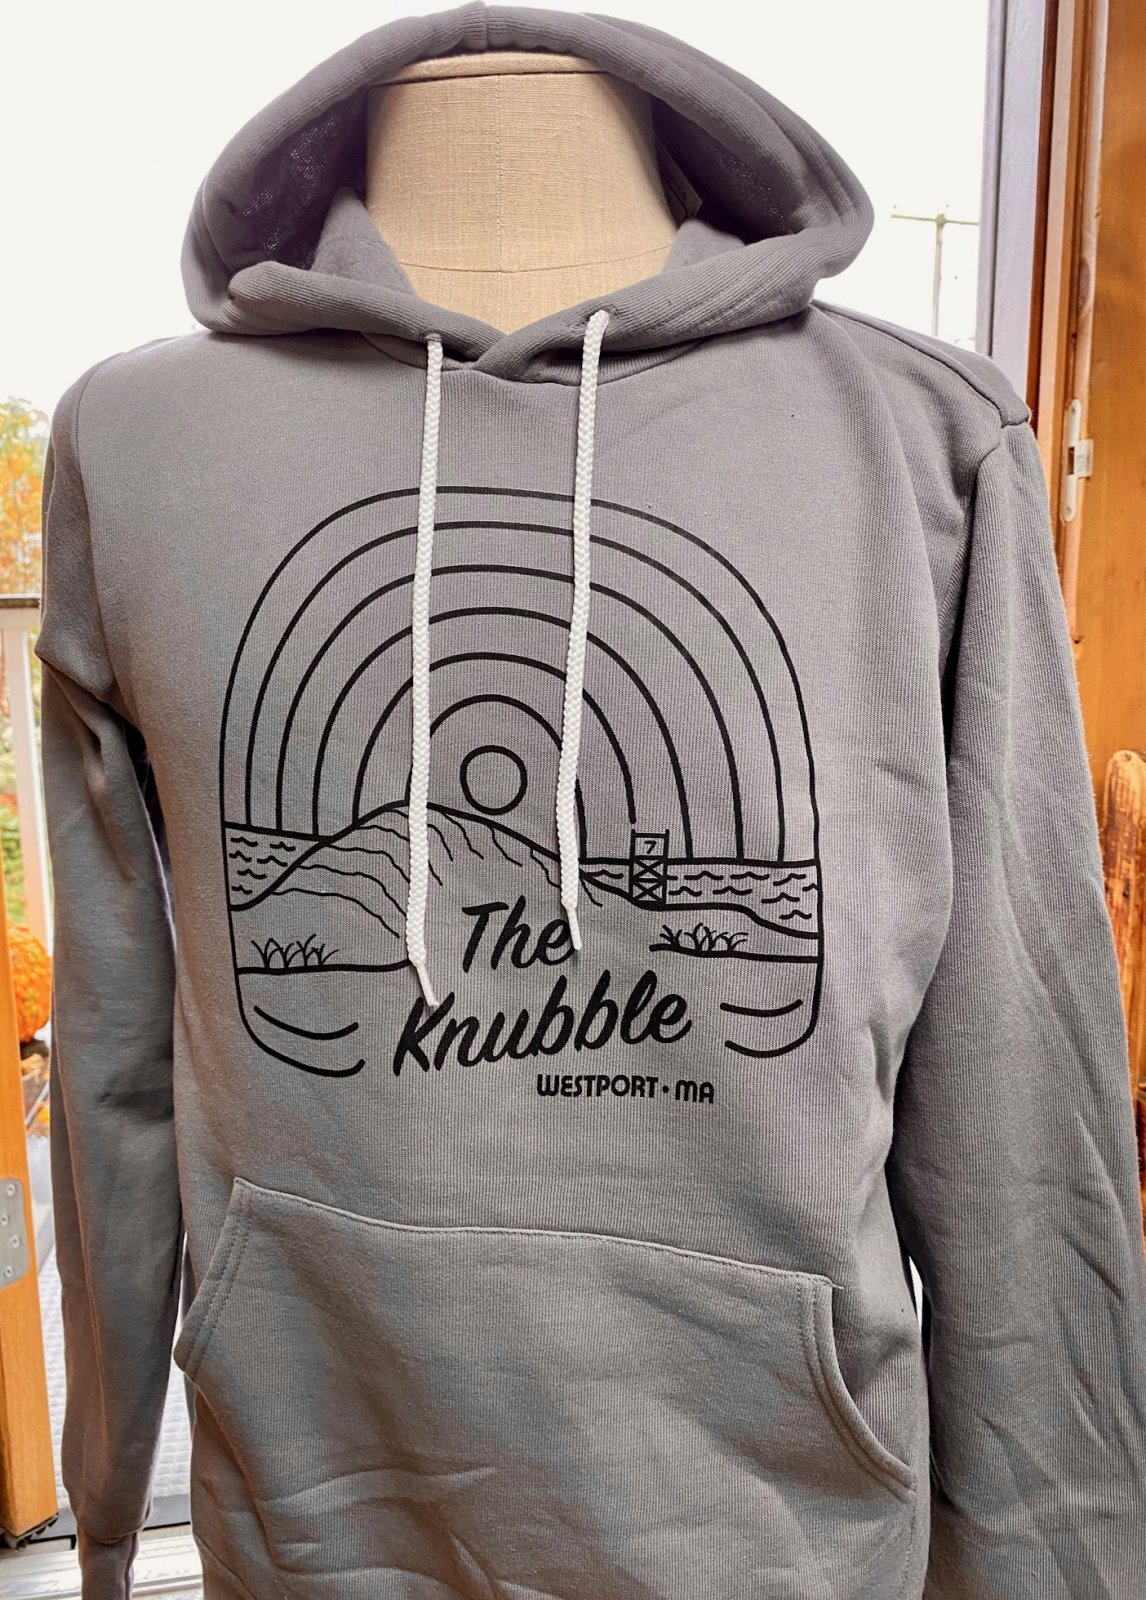 Atlantica Apparel Adult Hoody - Knubble Sunrise Grey